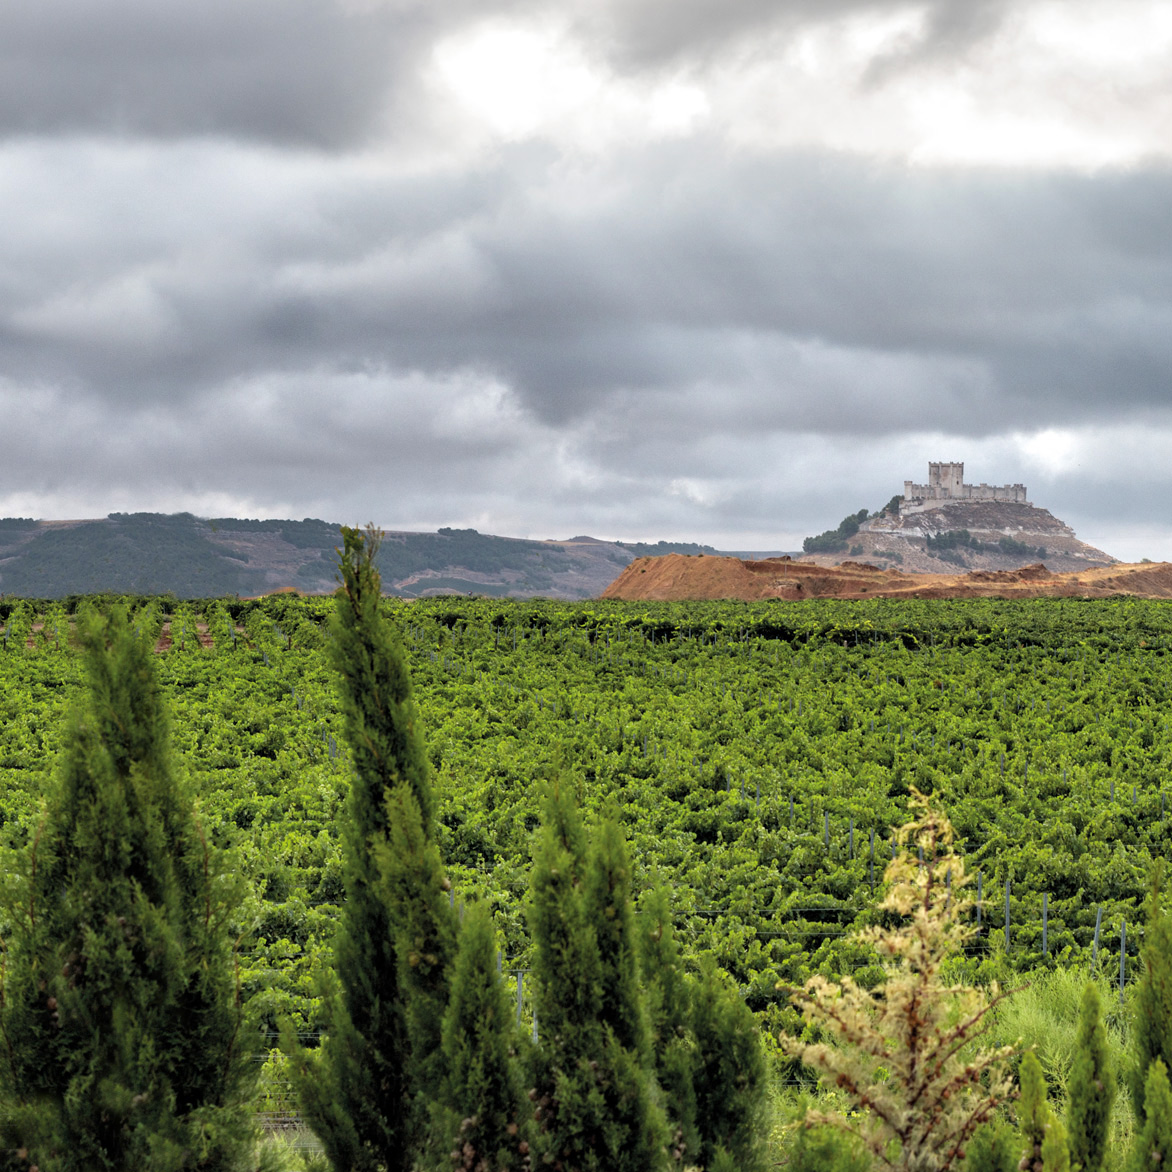 Vineyards of Peñafiel